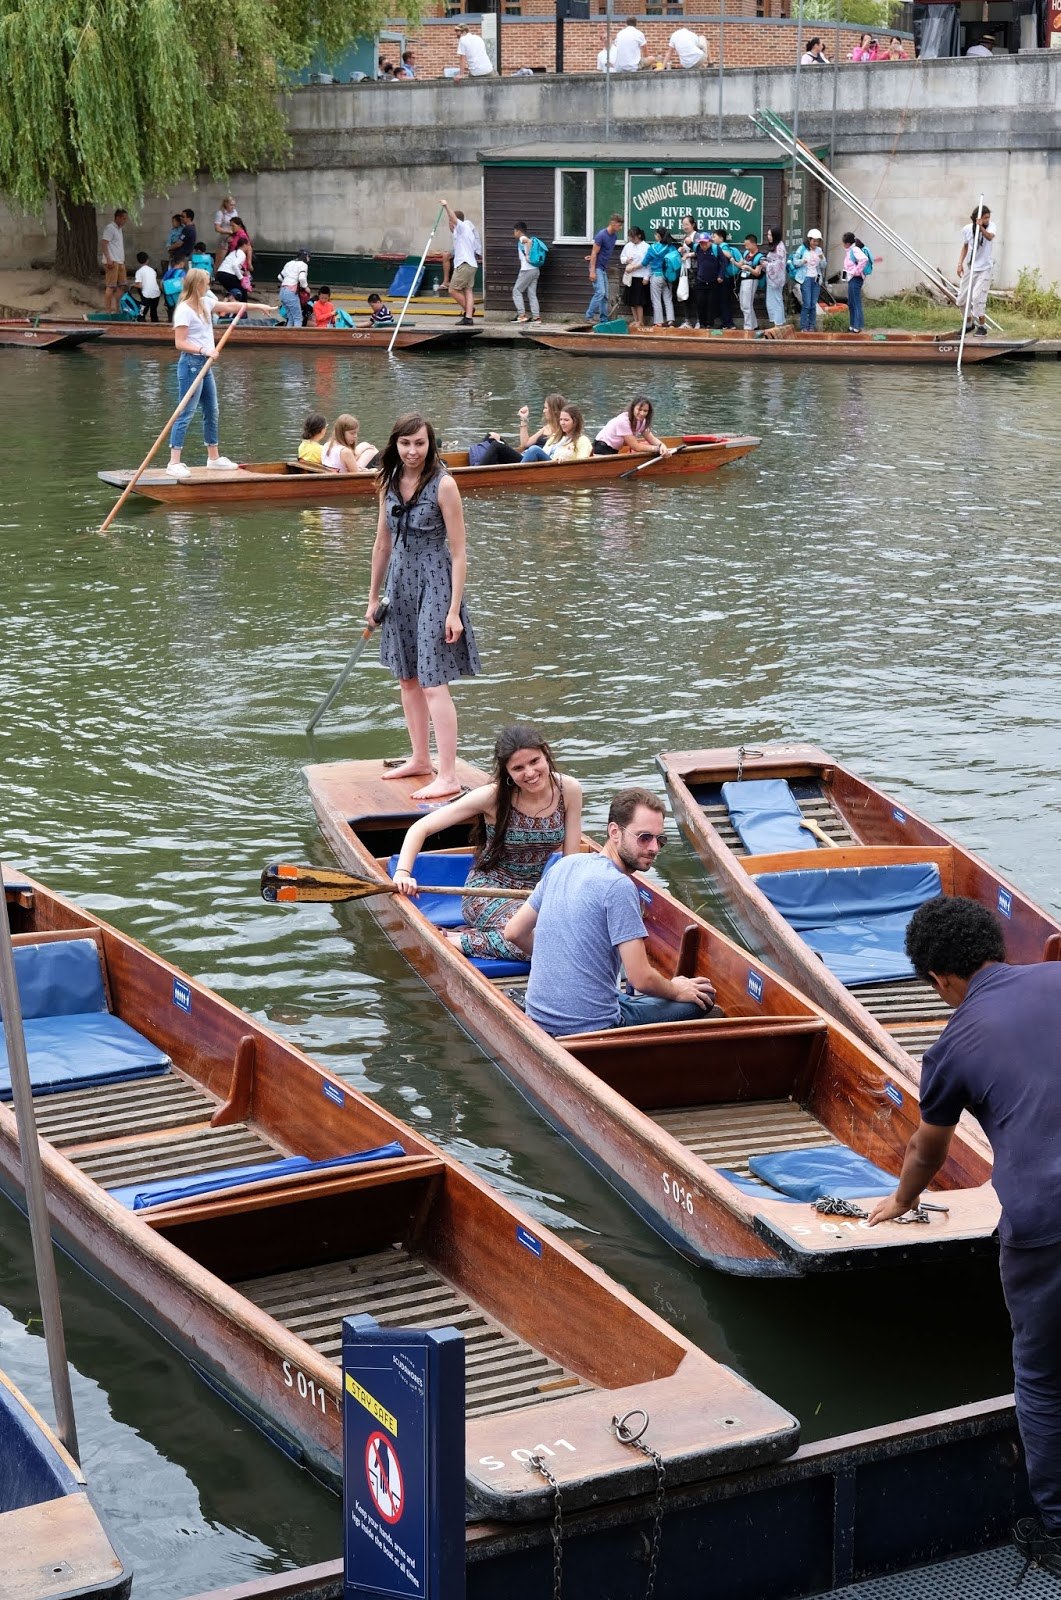 Arriving back at Scudamore's Boatyard after 2 hours of punting on the River Cam